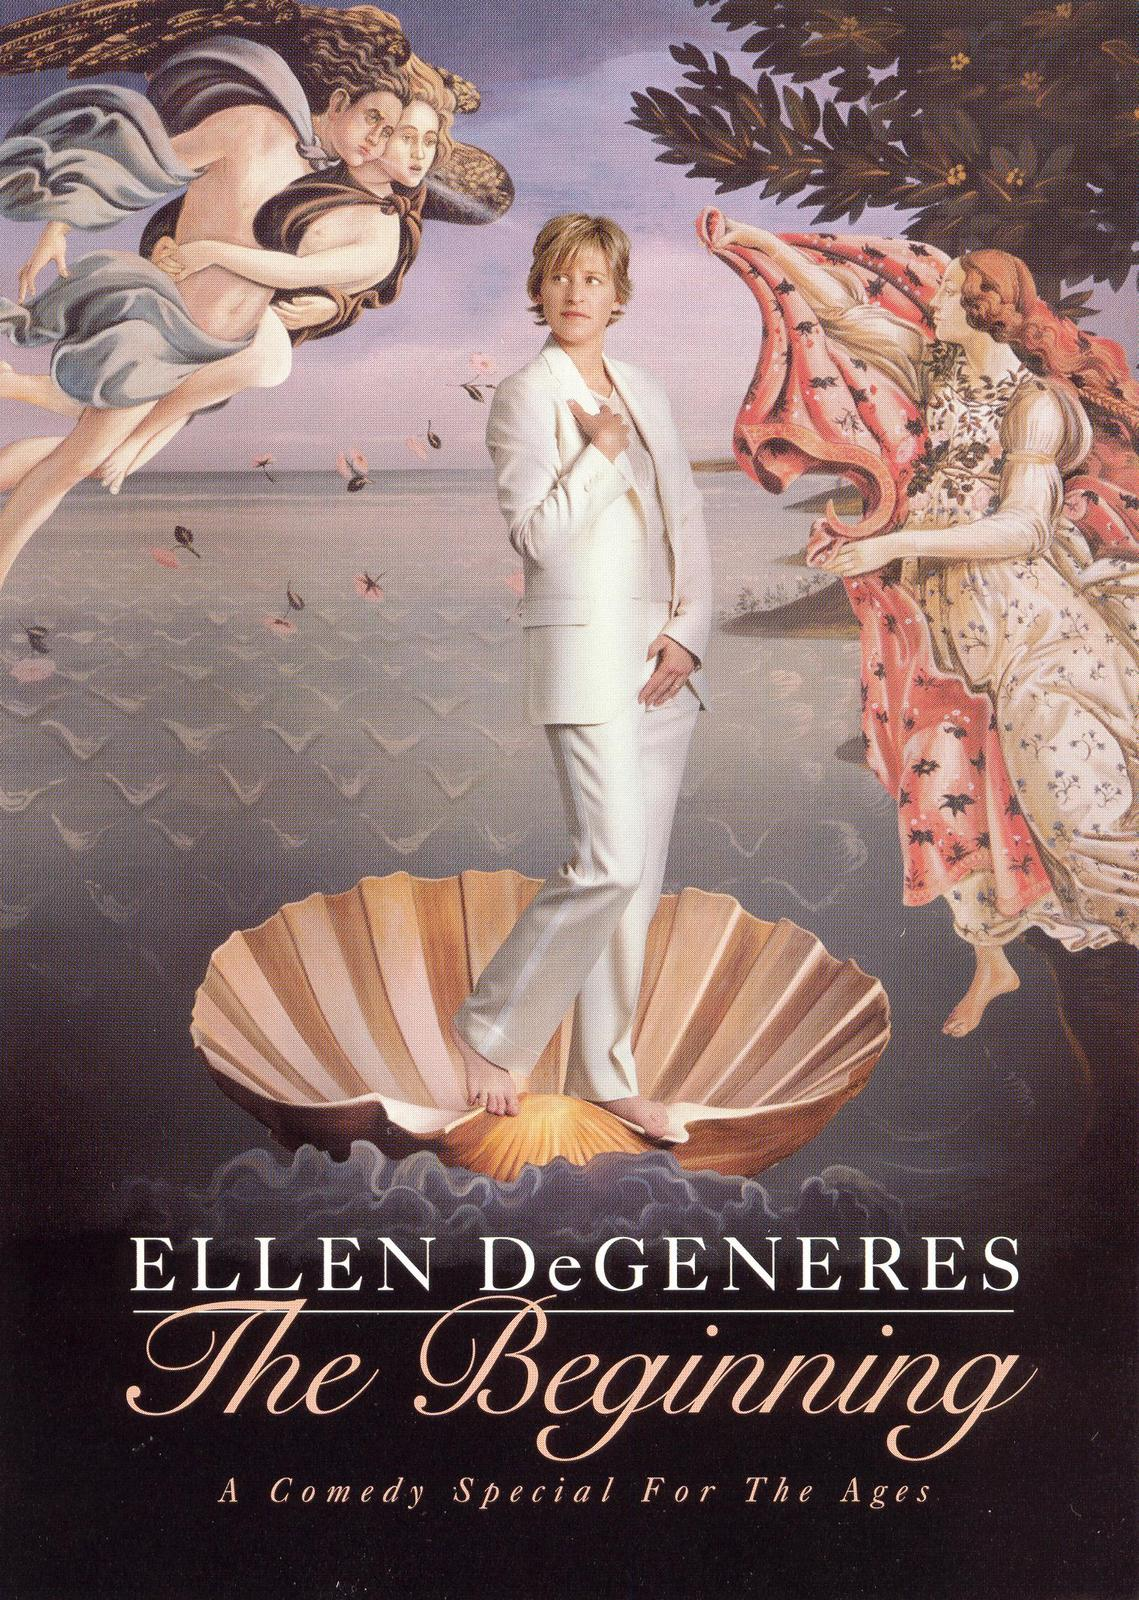 Ellen Degeneres The Beginning DVD - Snapcase 2001